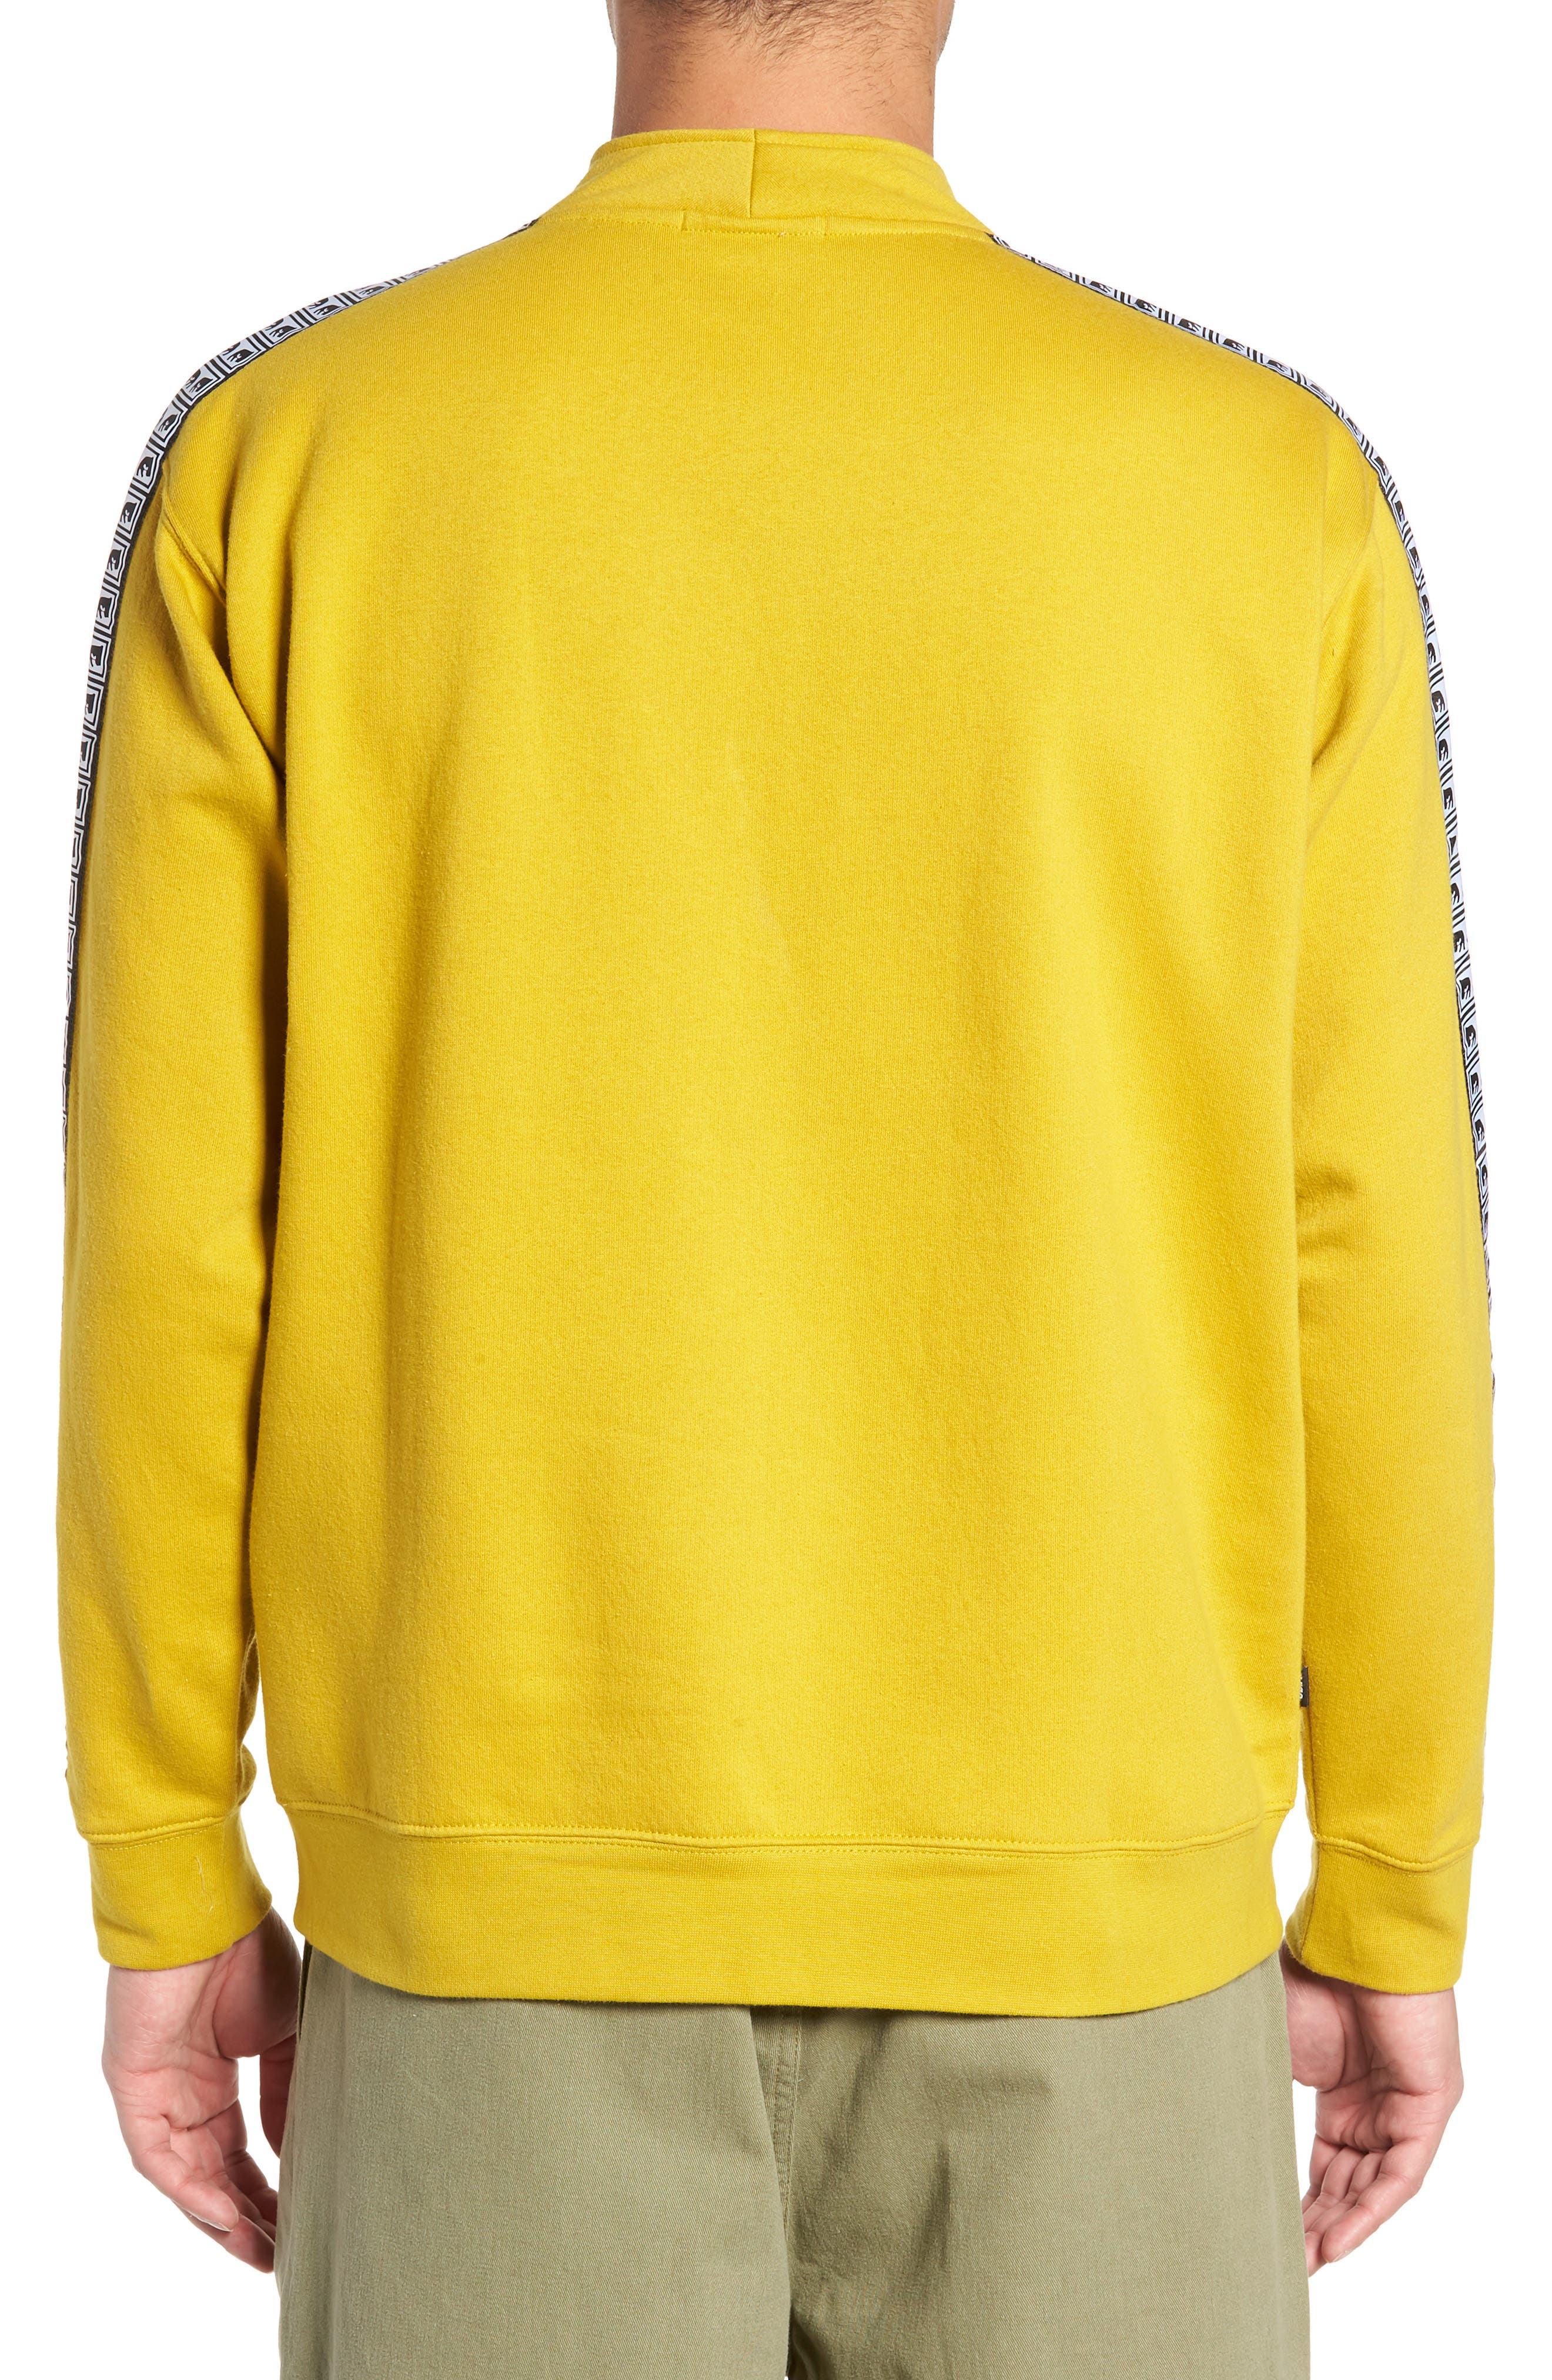 OBEY, Bridges Logo Tape Quarter Zip Pullover, Alternate thumbnail 2, color, 700